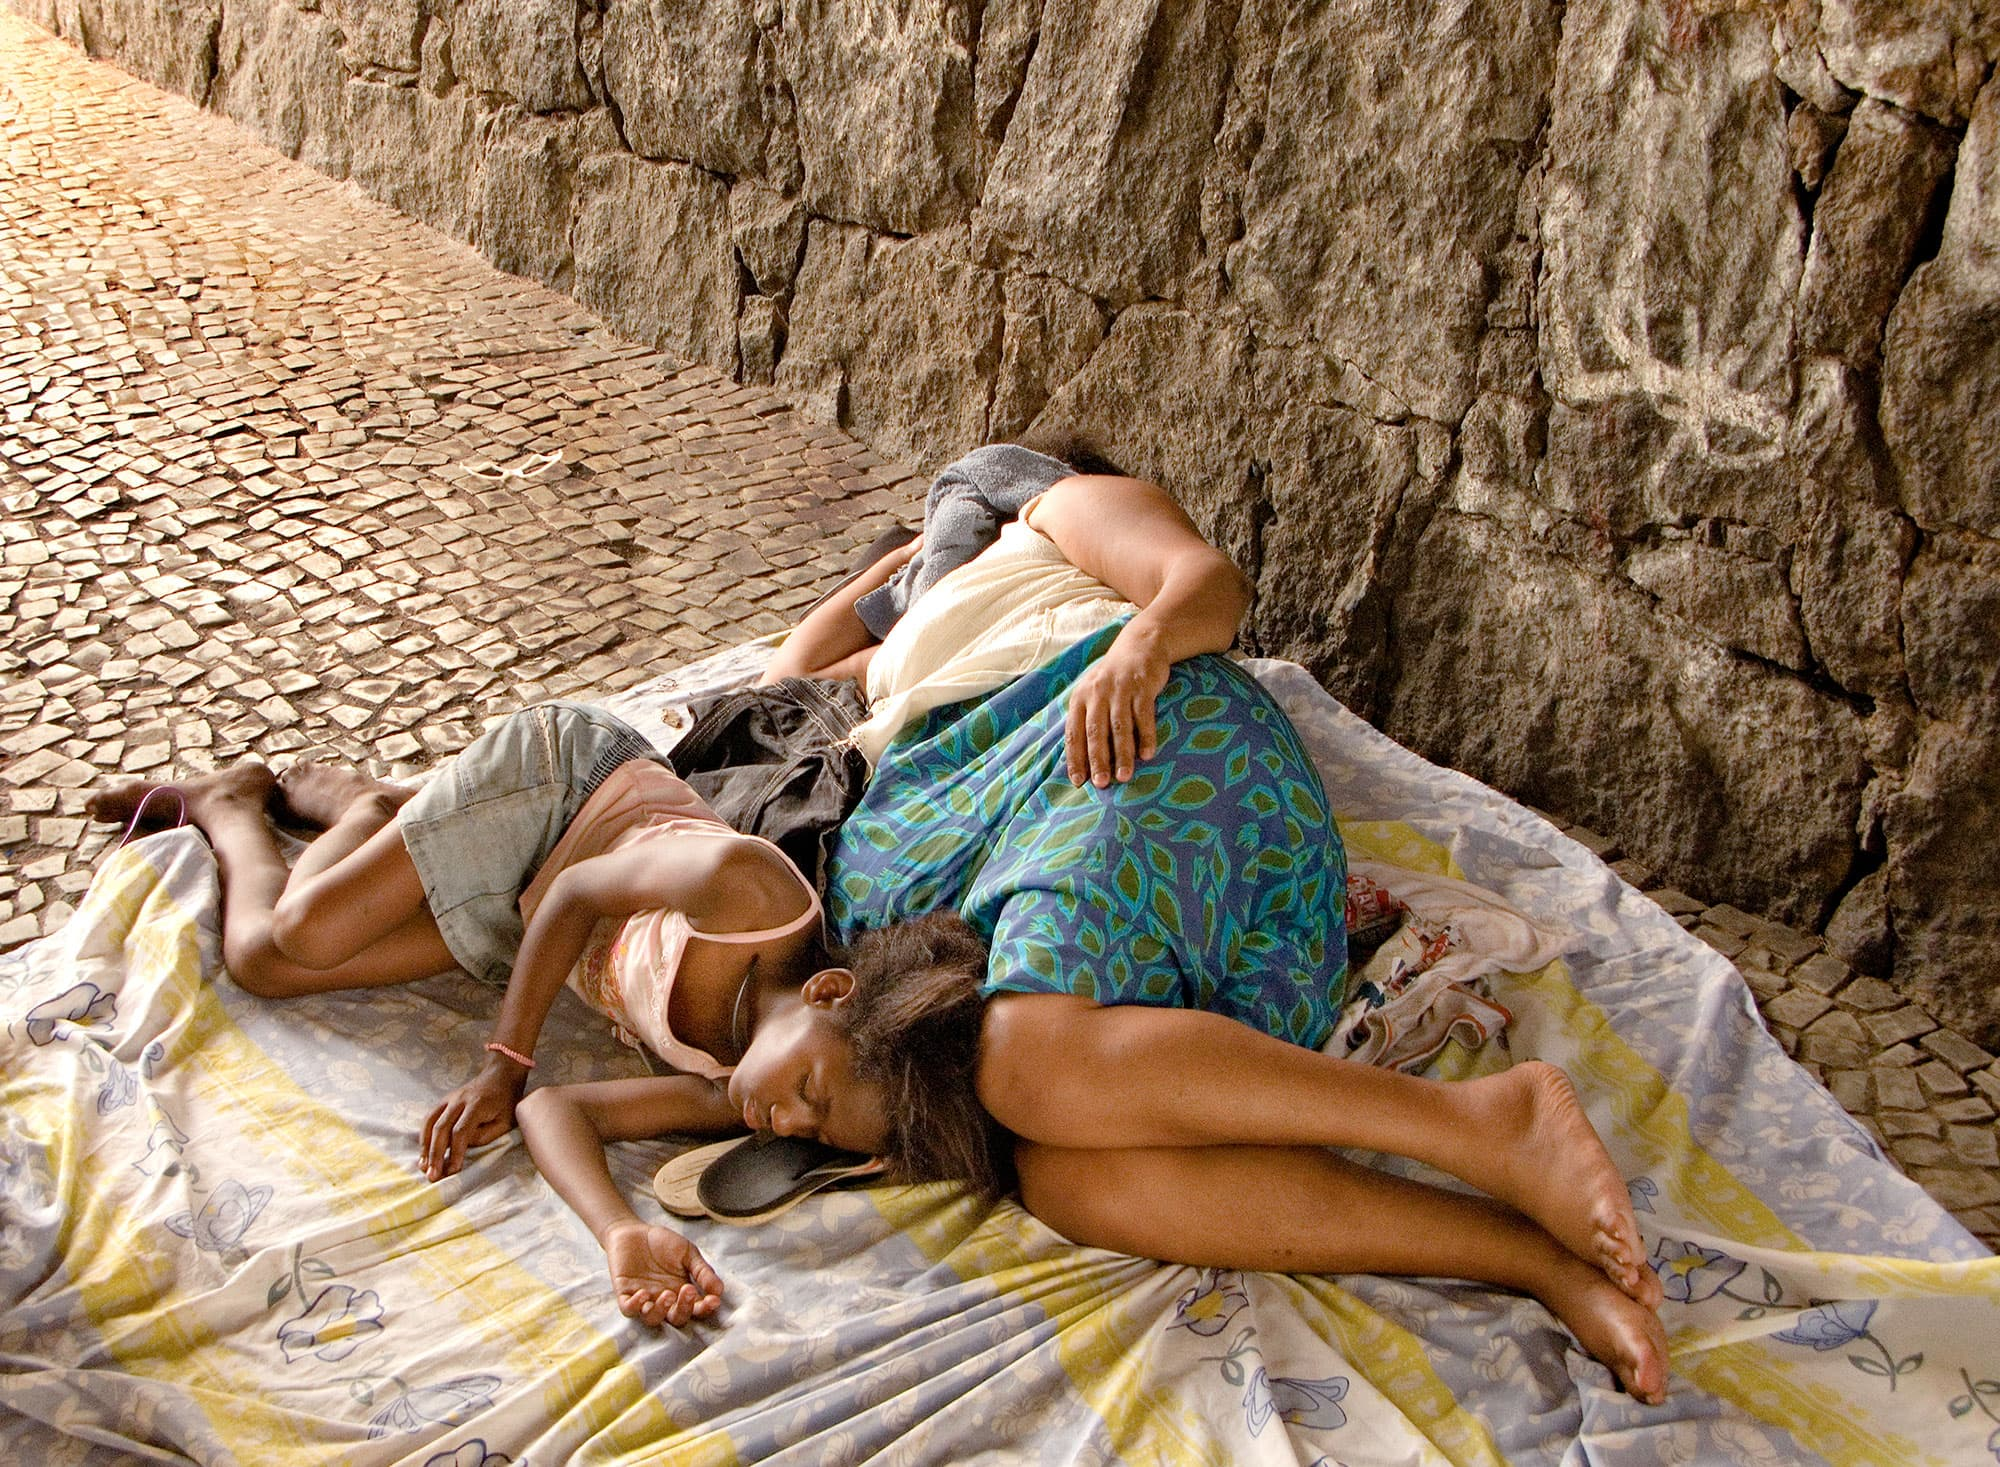 arthur-lazar-Mother-and-Child-Rio-2009